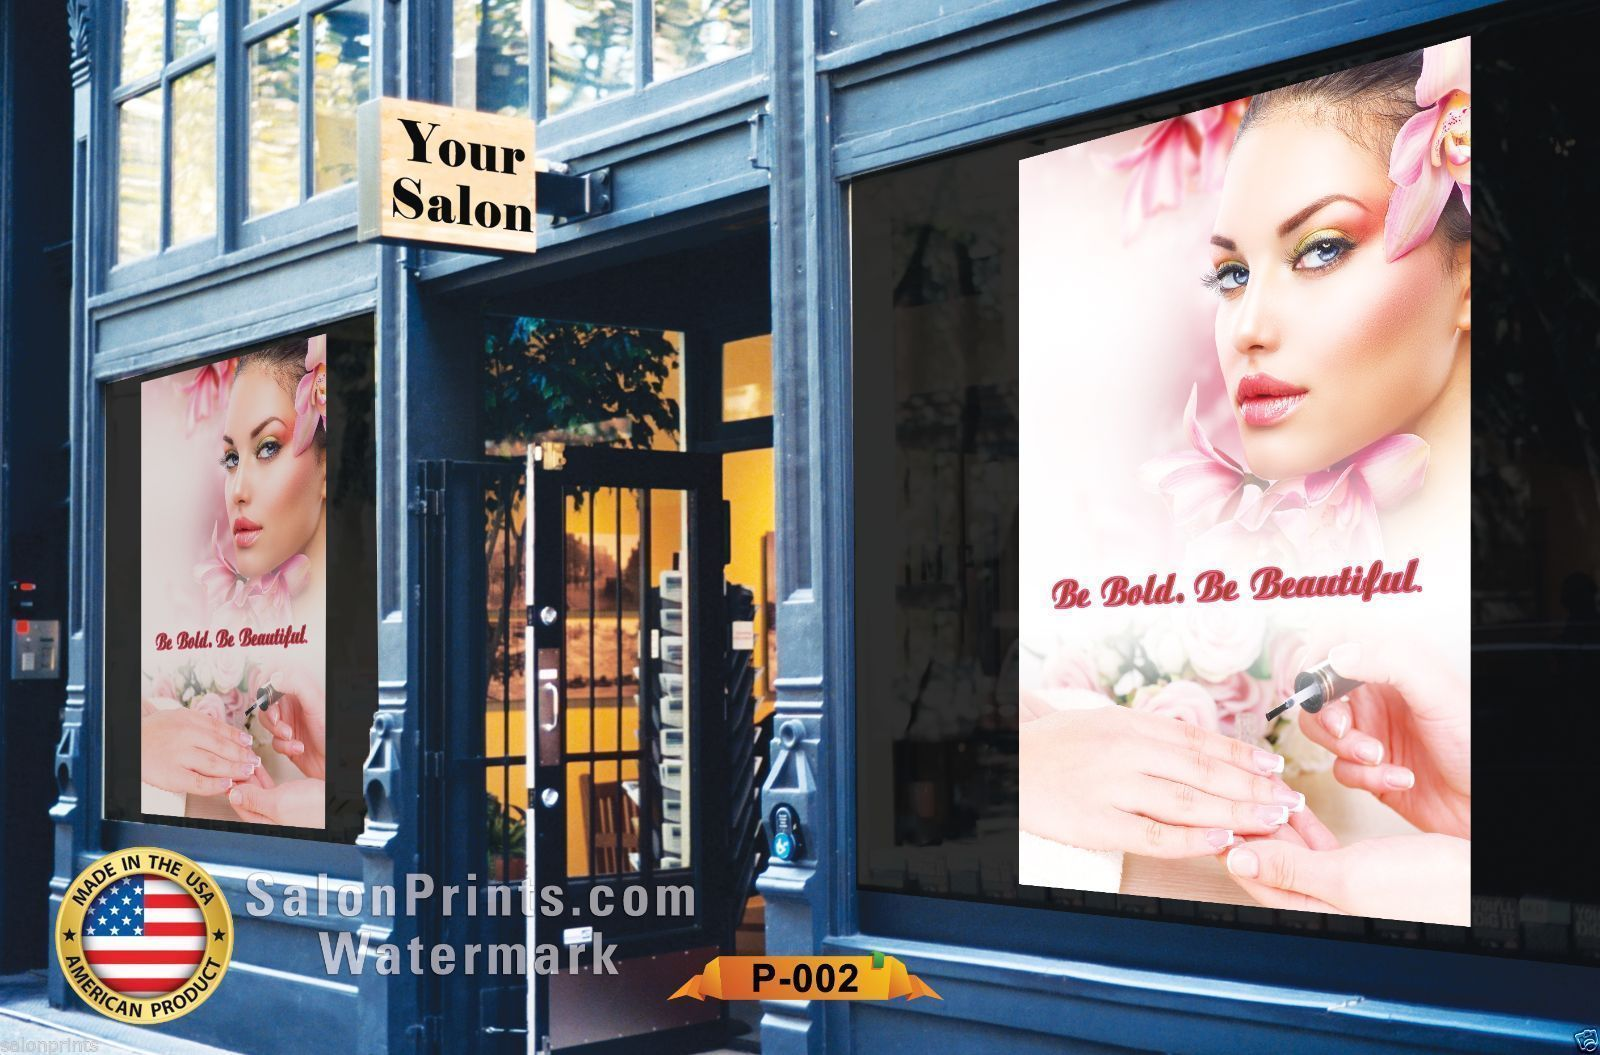 Nail Salon Poster Nsd P170 Salon Prints One Stop Shop Printing Marketing For Nail Spa Hair Salon Barber Shop Beauty Salon Beauty Schools Beauty Supply